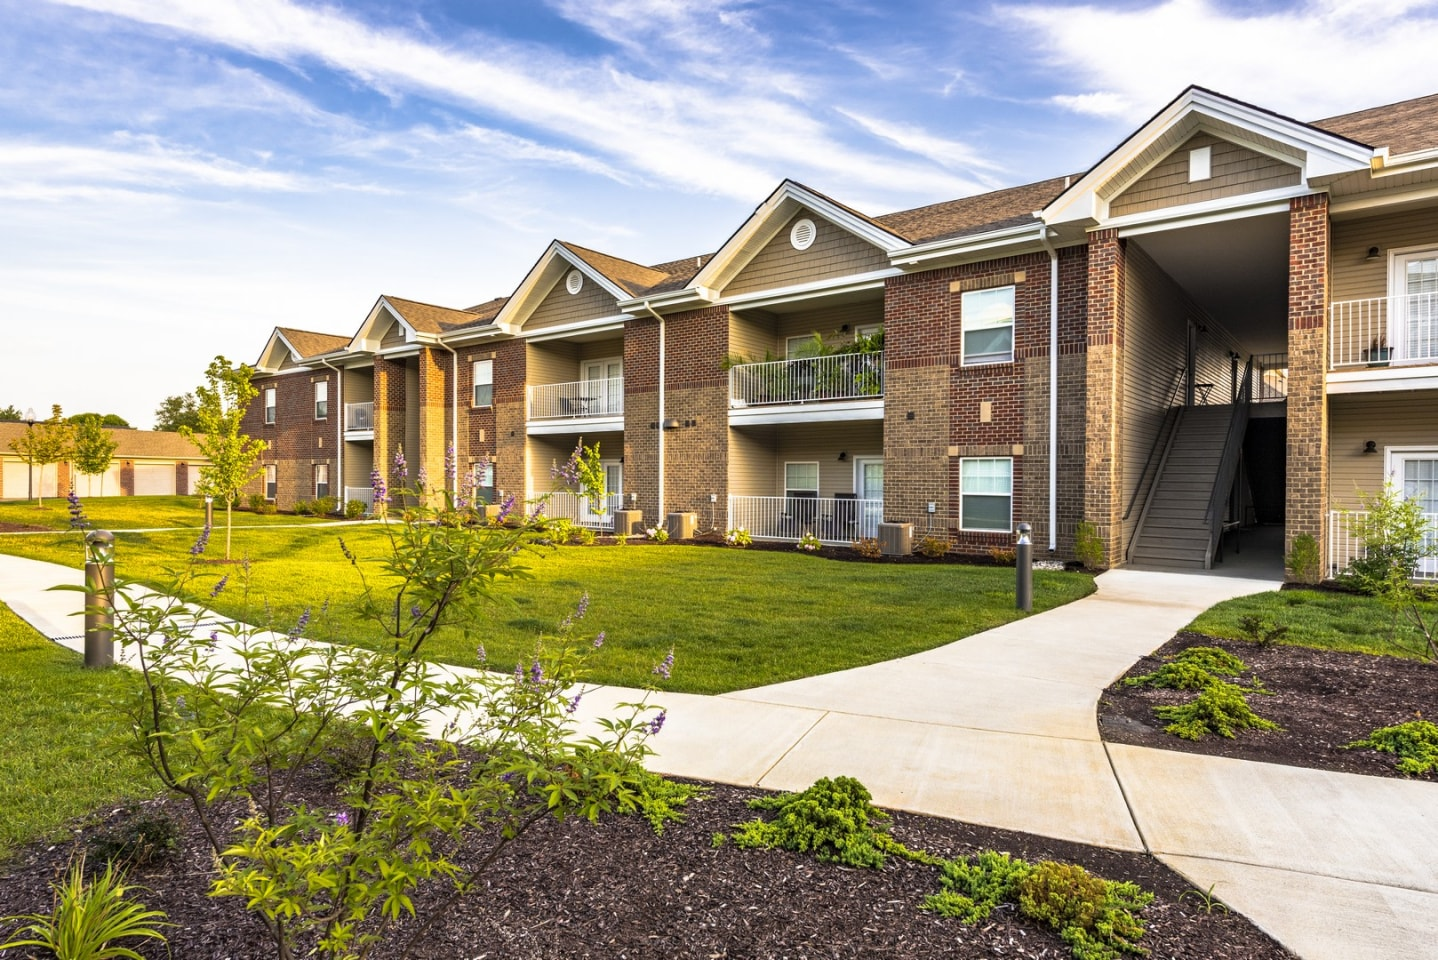 Apartments and Houses for Rent Near Me in Louisville, KY